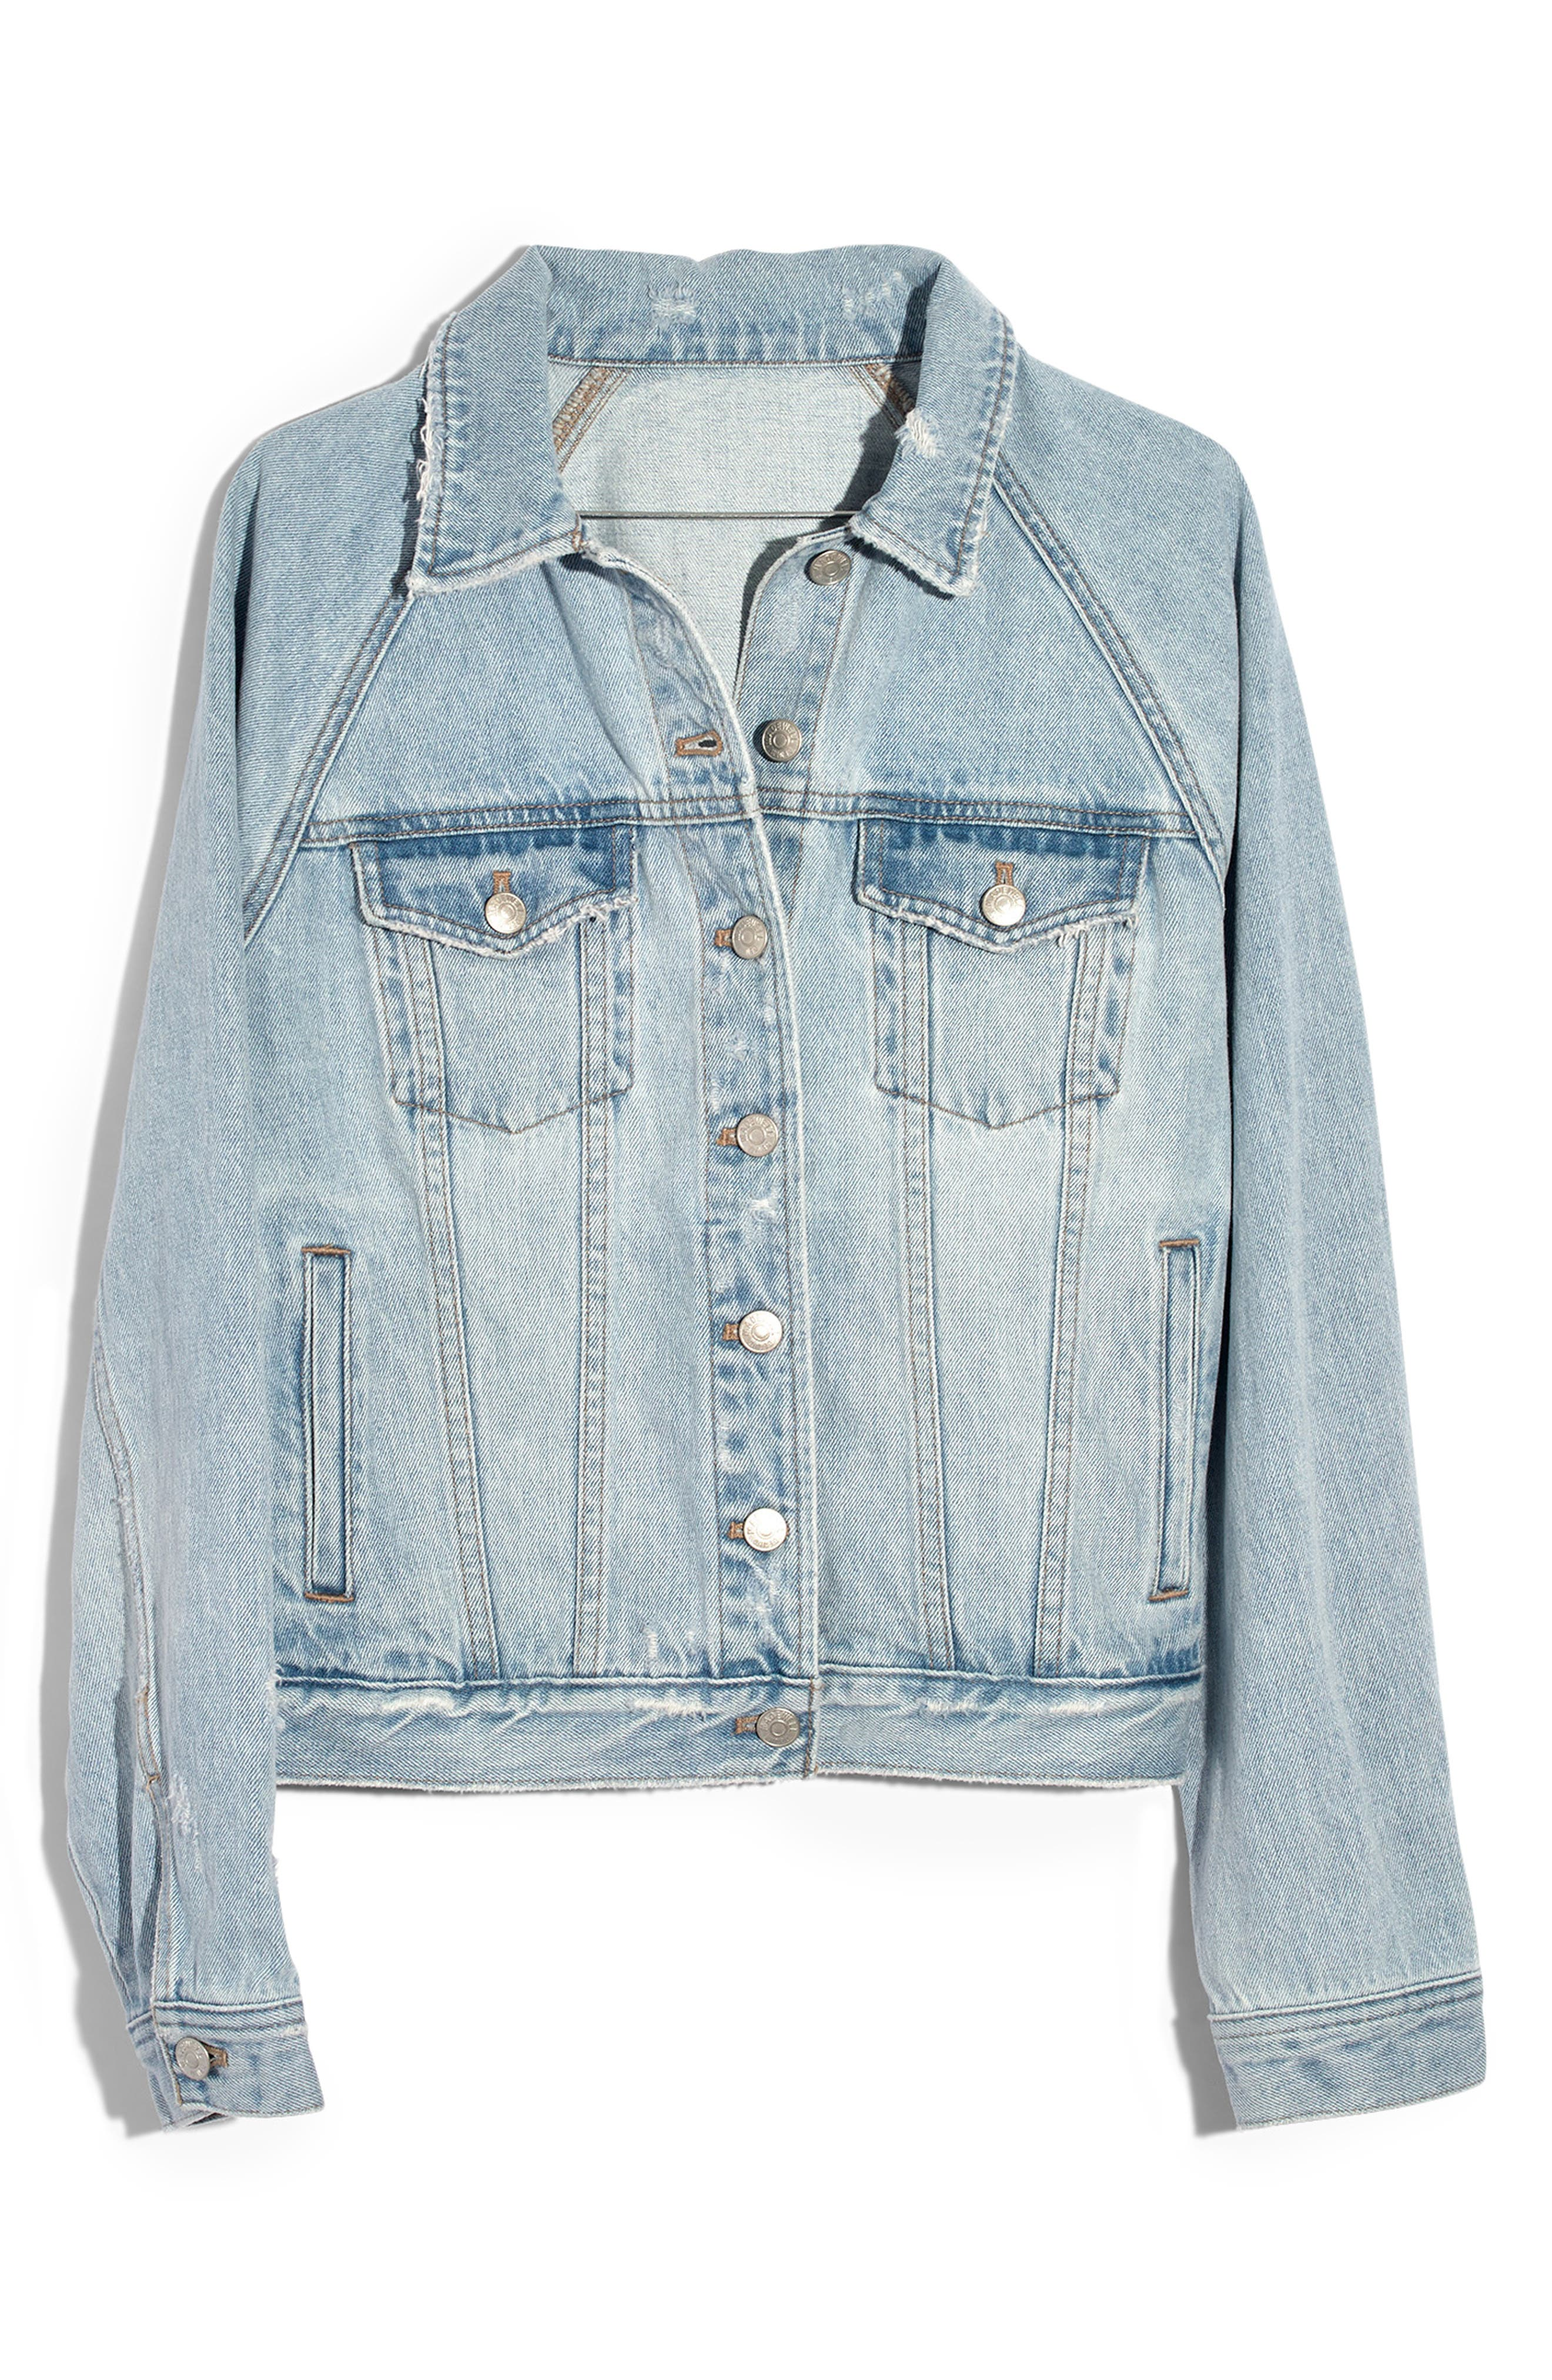 MADEWELL, The Raglan Oversize Jean Jacket, Alternate thumbnail 4, color, BRISTOL